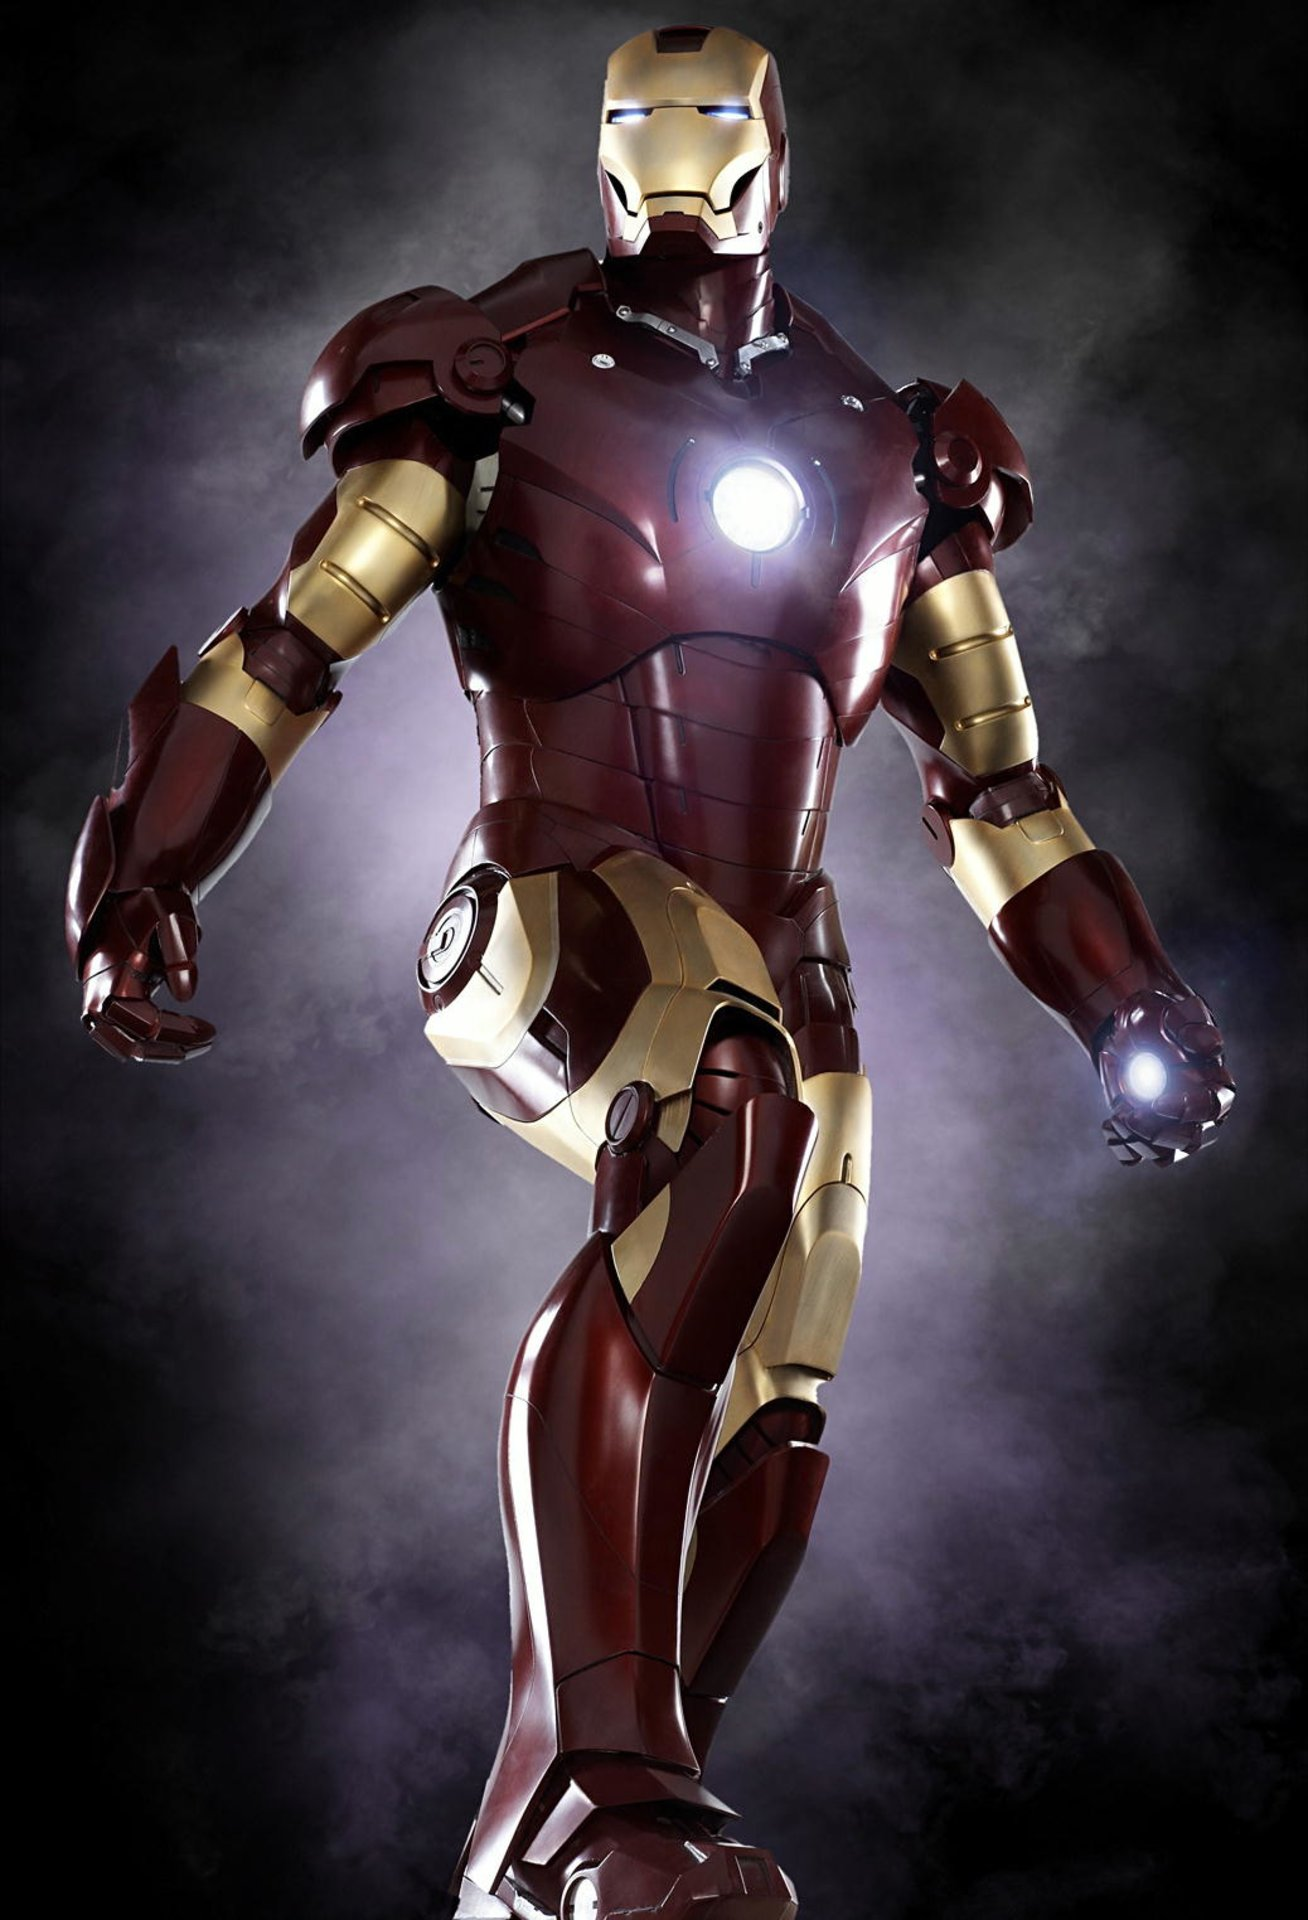 Iron man film 2008 trailer kritik - Image de iron man ...